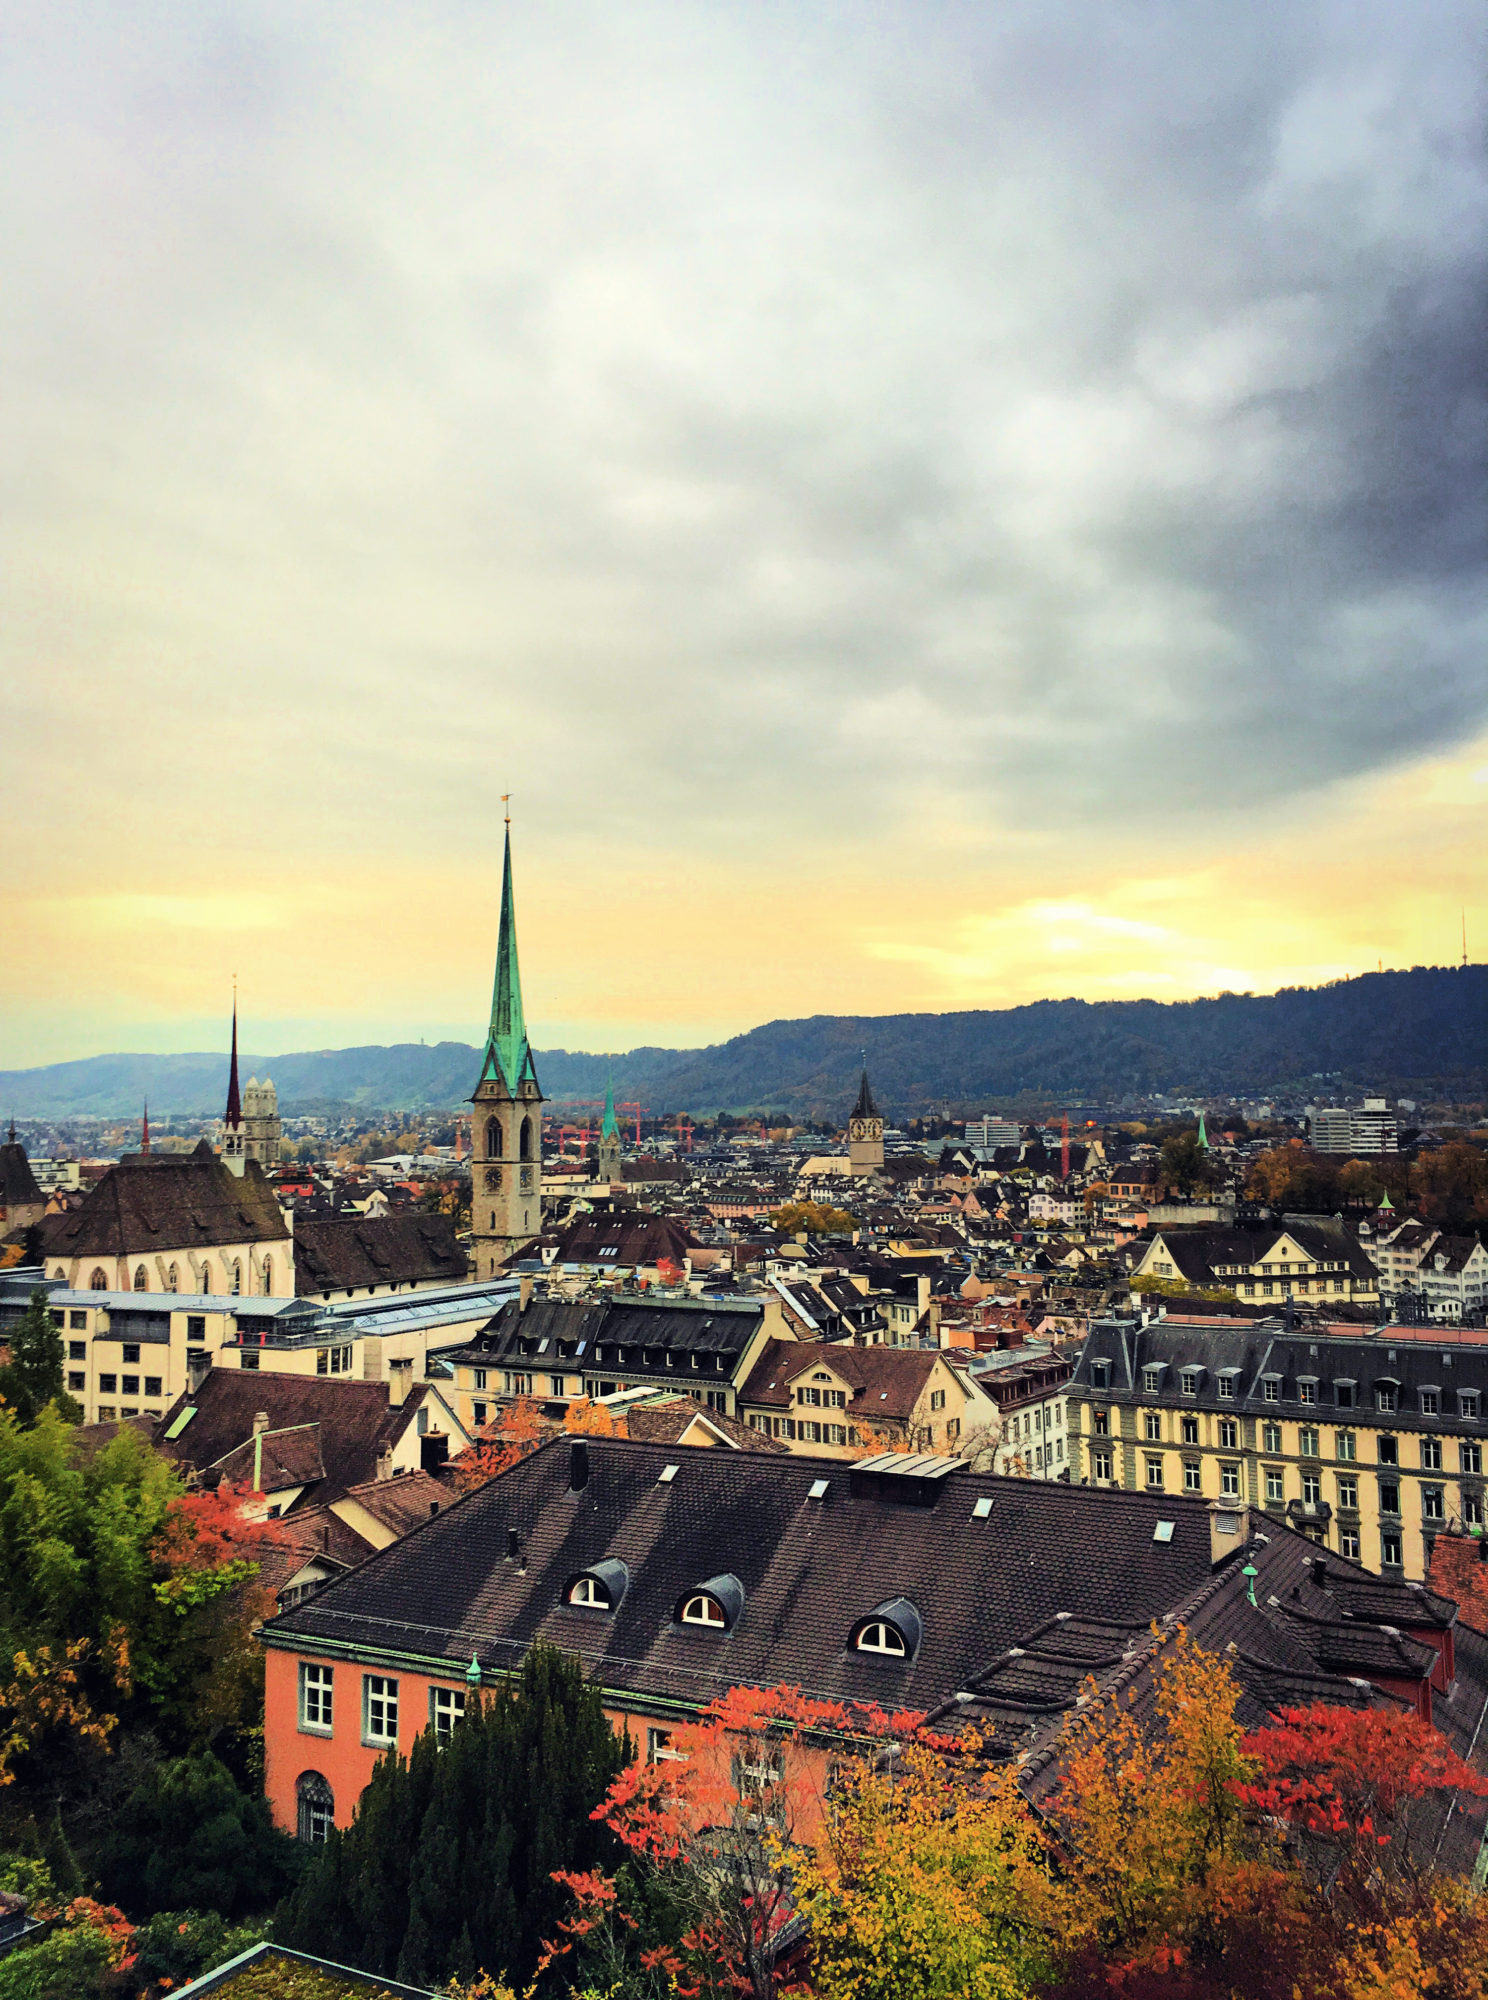 Exploring Altstadt is one of the top things to do in Zürich.